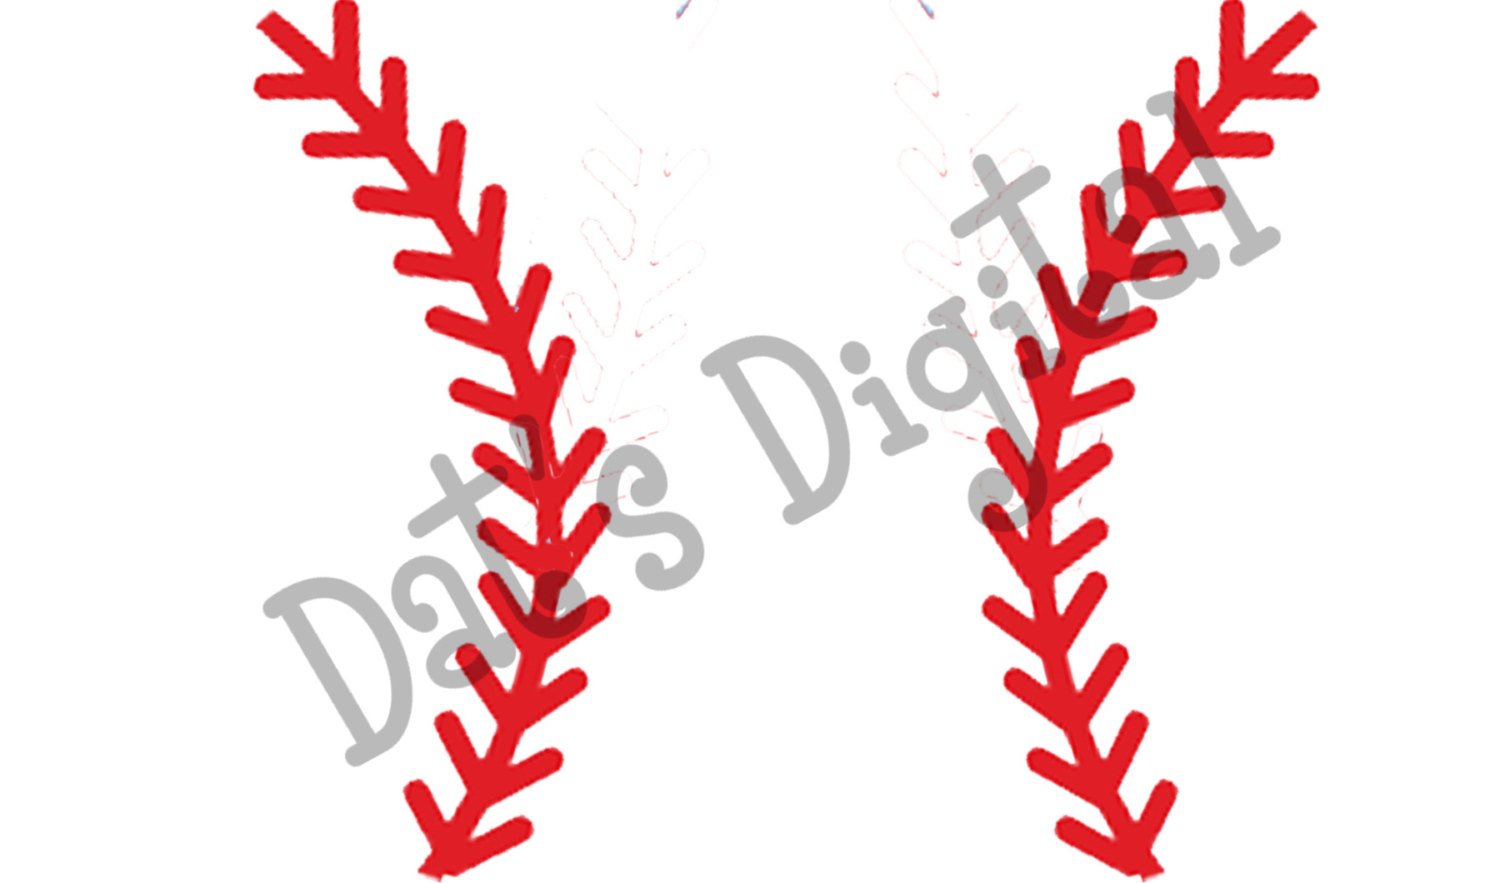 Baseball curved laces clipart vector stock Stitches Cliparts | Free download best Stitches Cliparts on ... vector stock